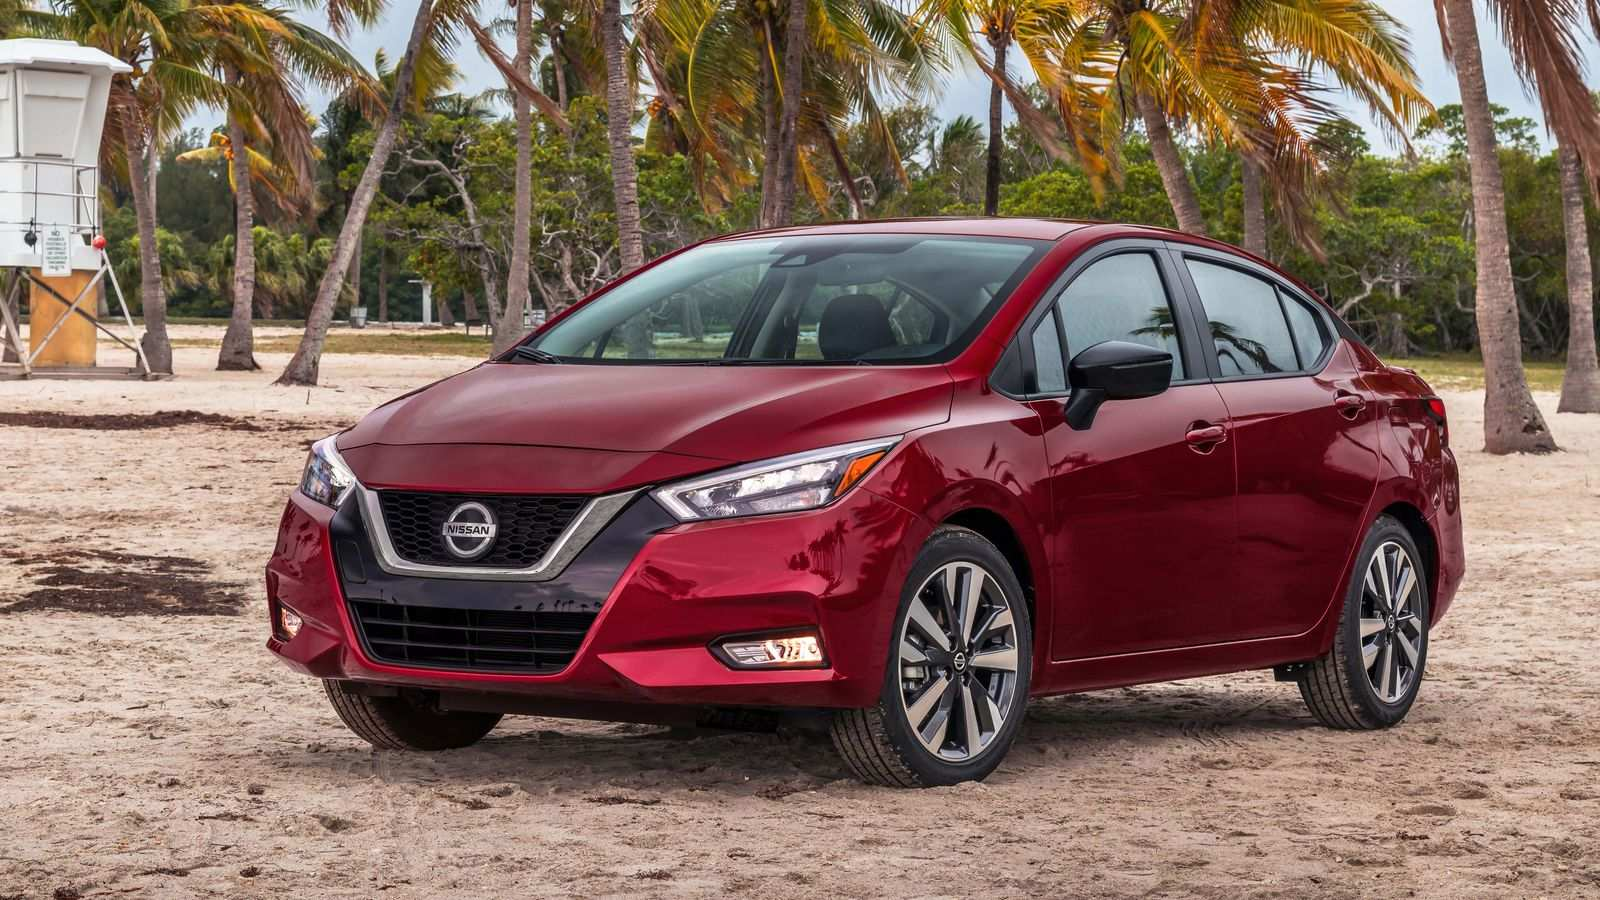 54 Gallery of Nissan Versa 2020 Price Pictures by Nissan Versa 2020 Price